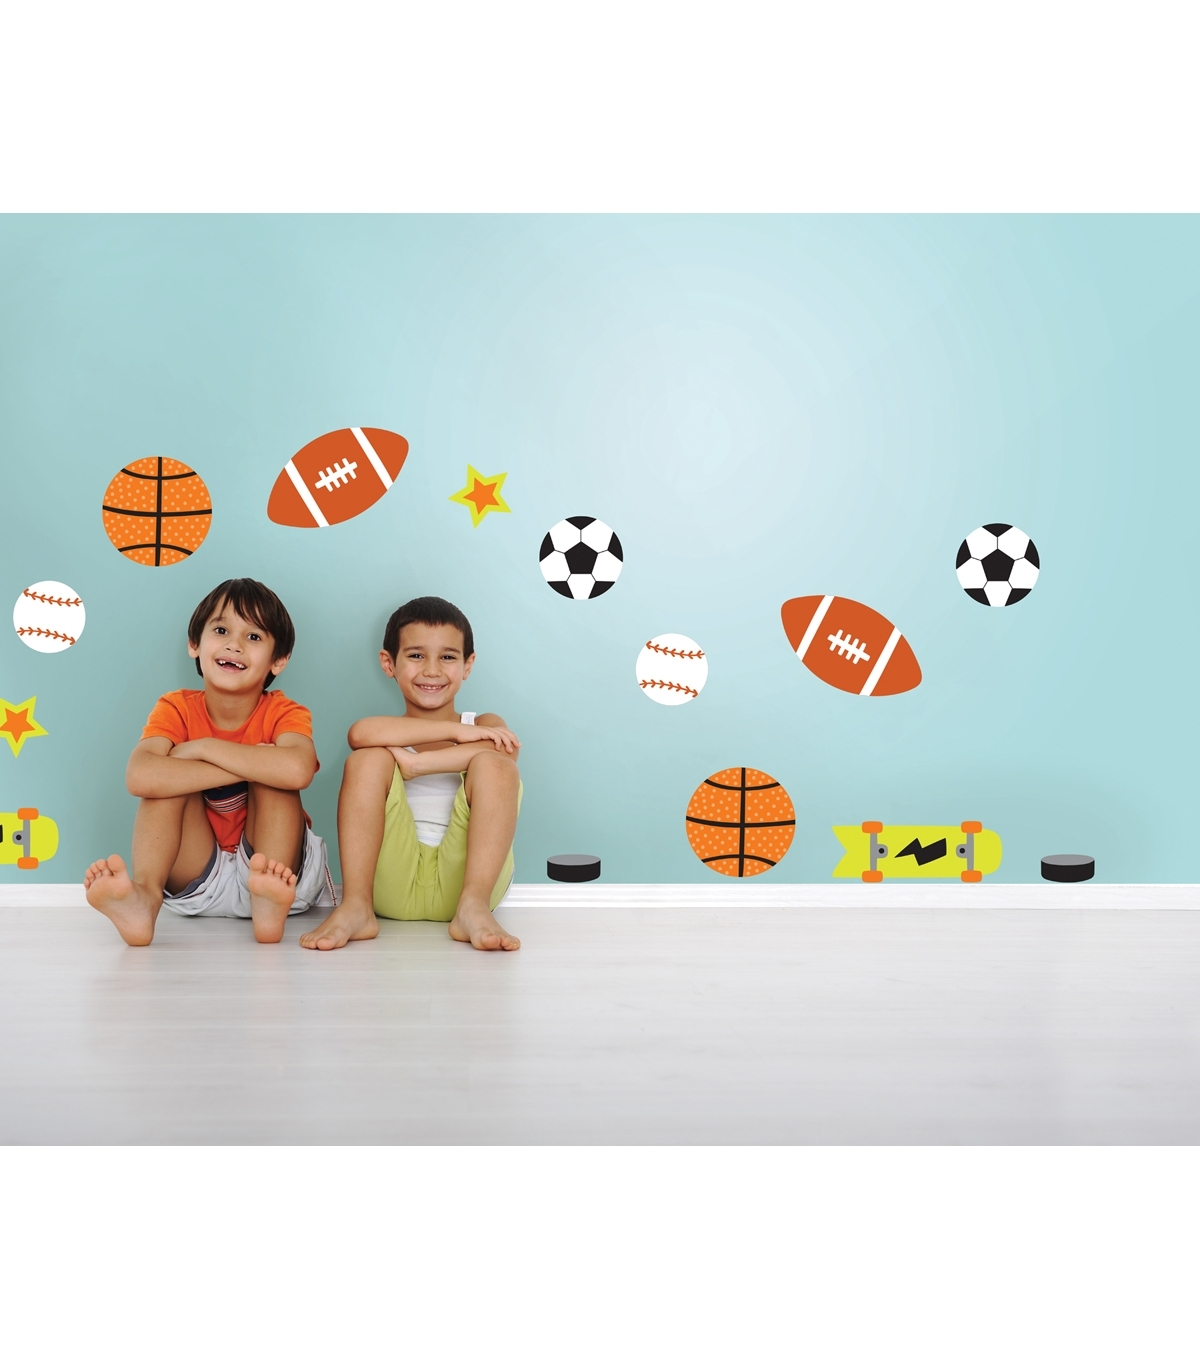 Wall Pops Junior Varsity Sports Wall Decal Kit, 28 Piece Set Regarding Sports Wall Decals Bring Inspiration To Your Boy's Bedroom (Image 9 of 9)